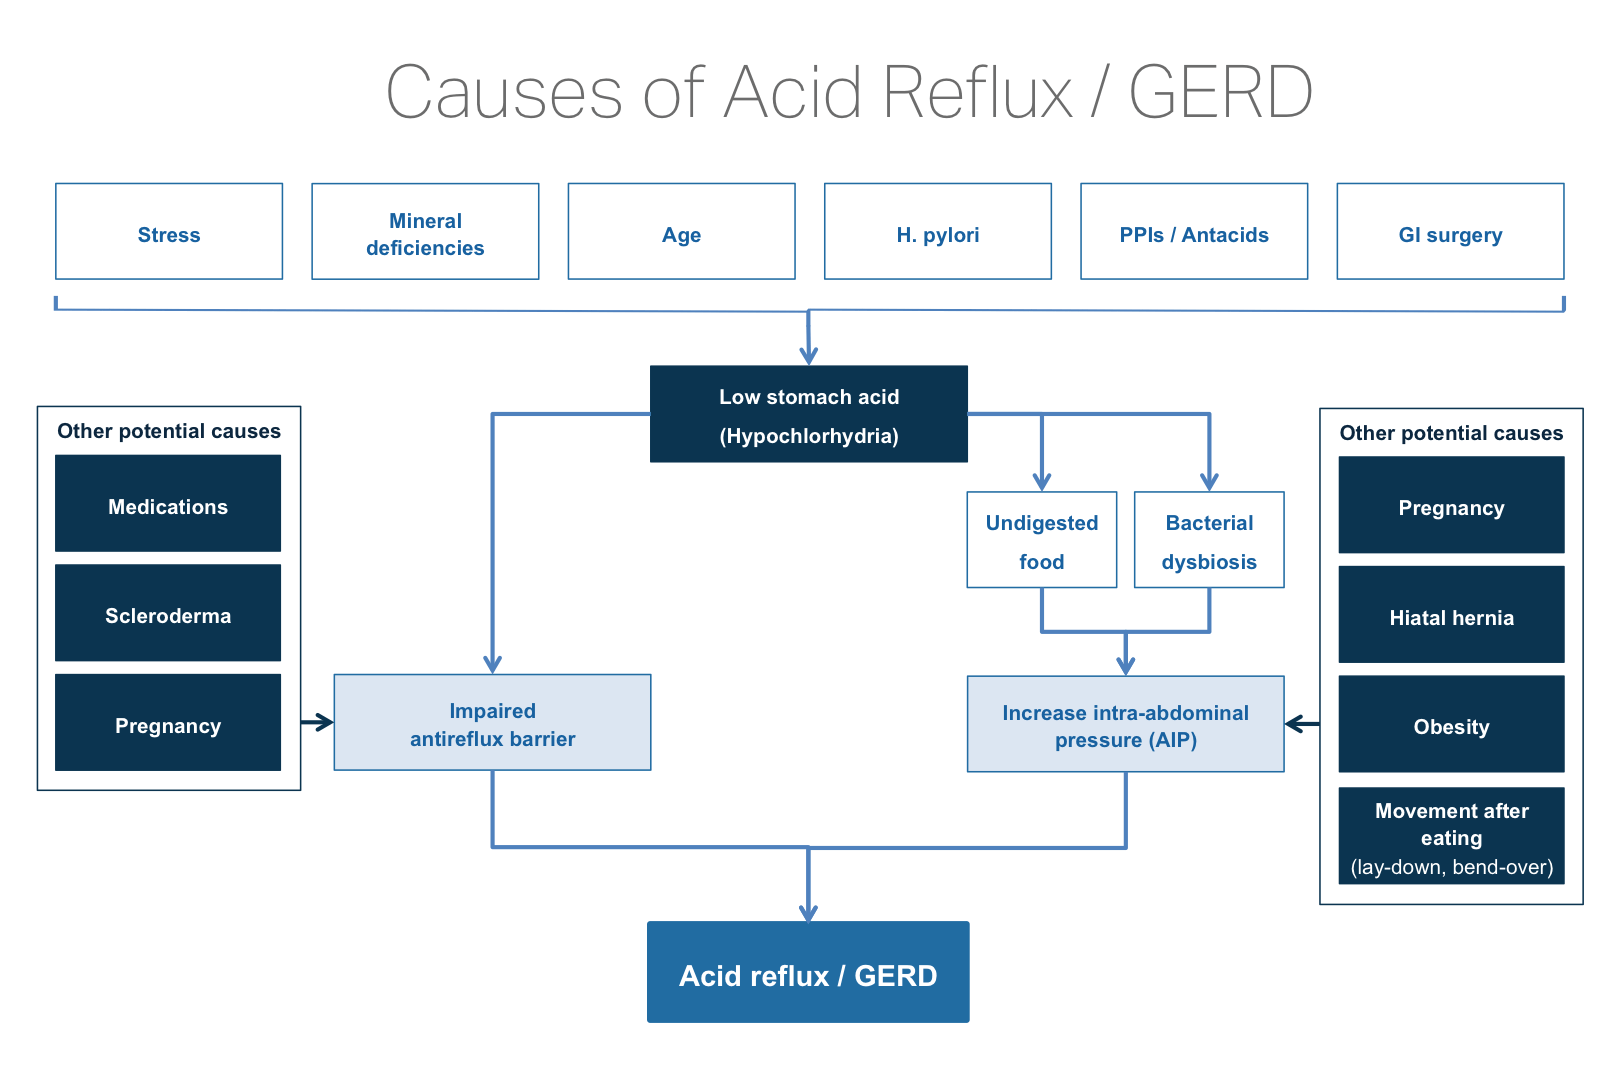 cause of acid reflux natural treatment gerd [ 1621 x 1074 Pixel ]